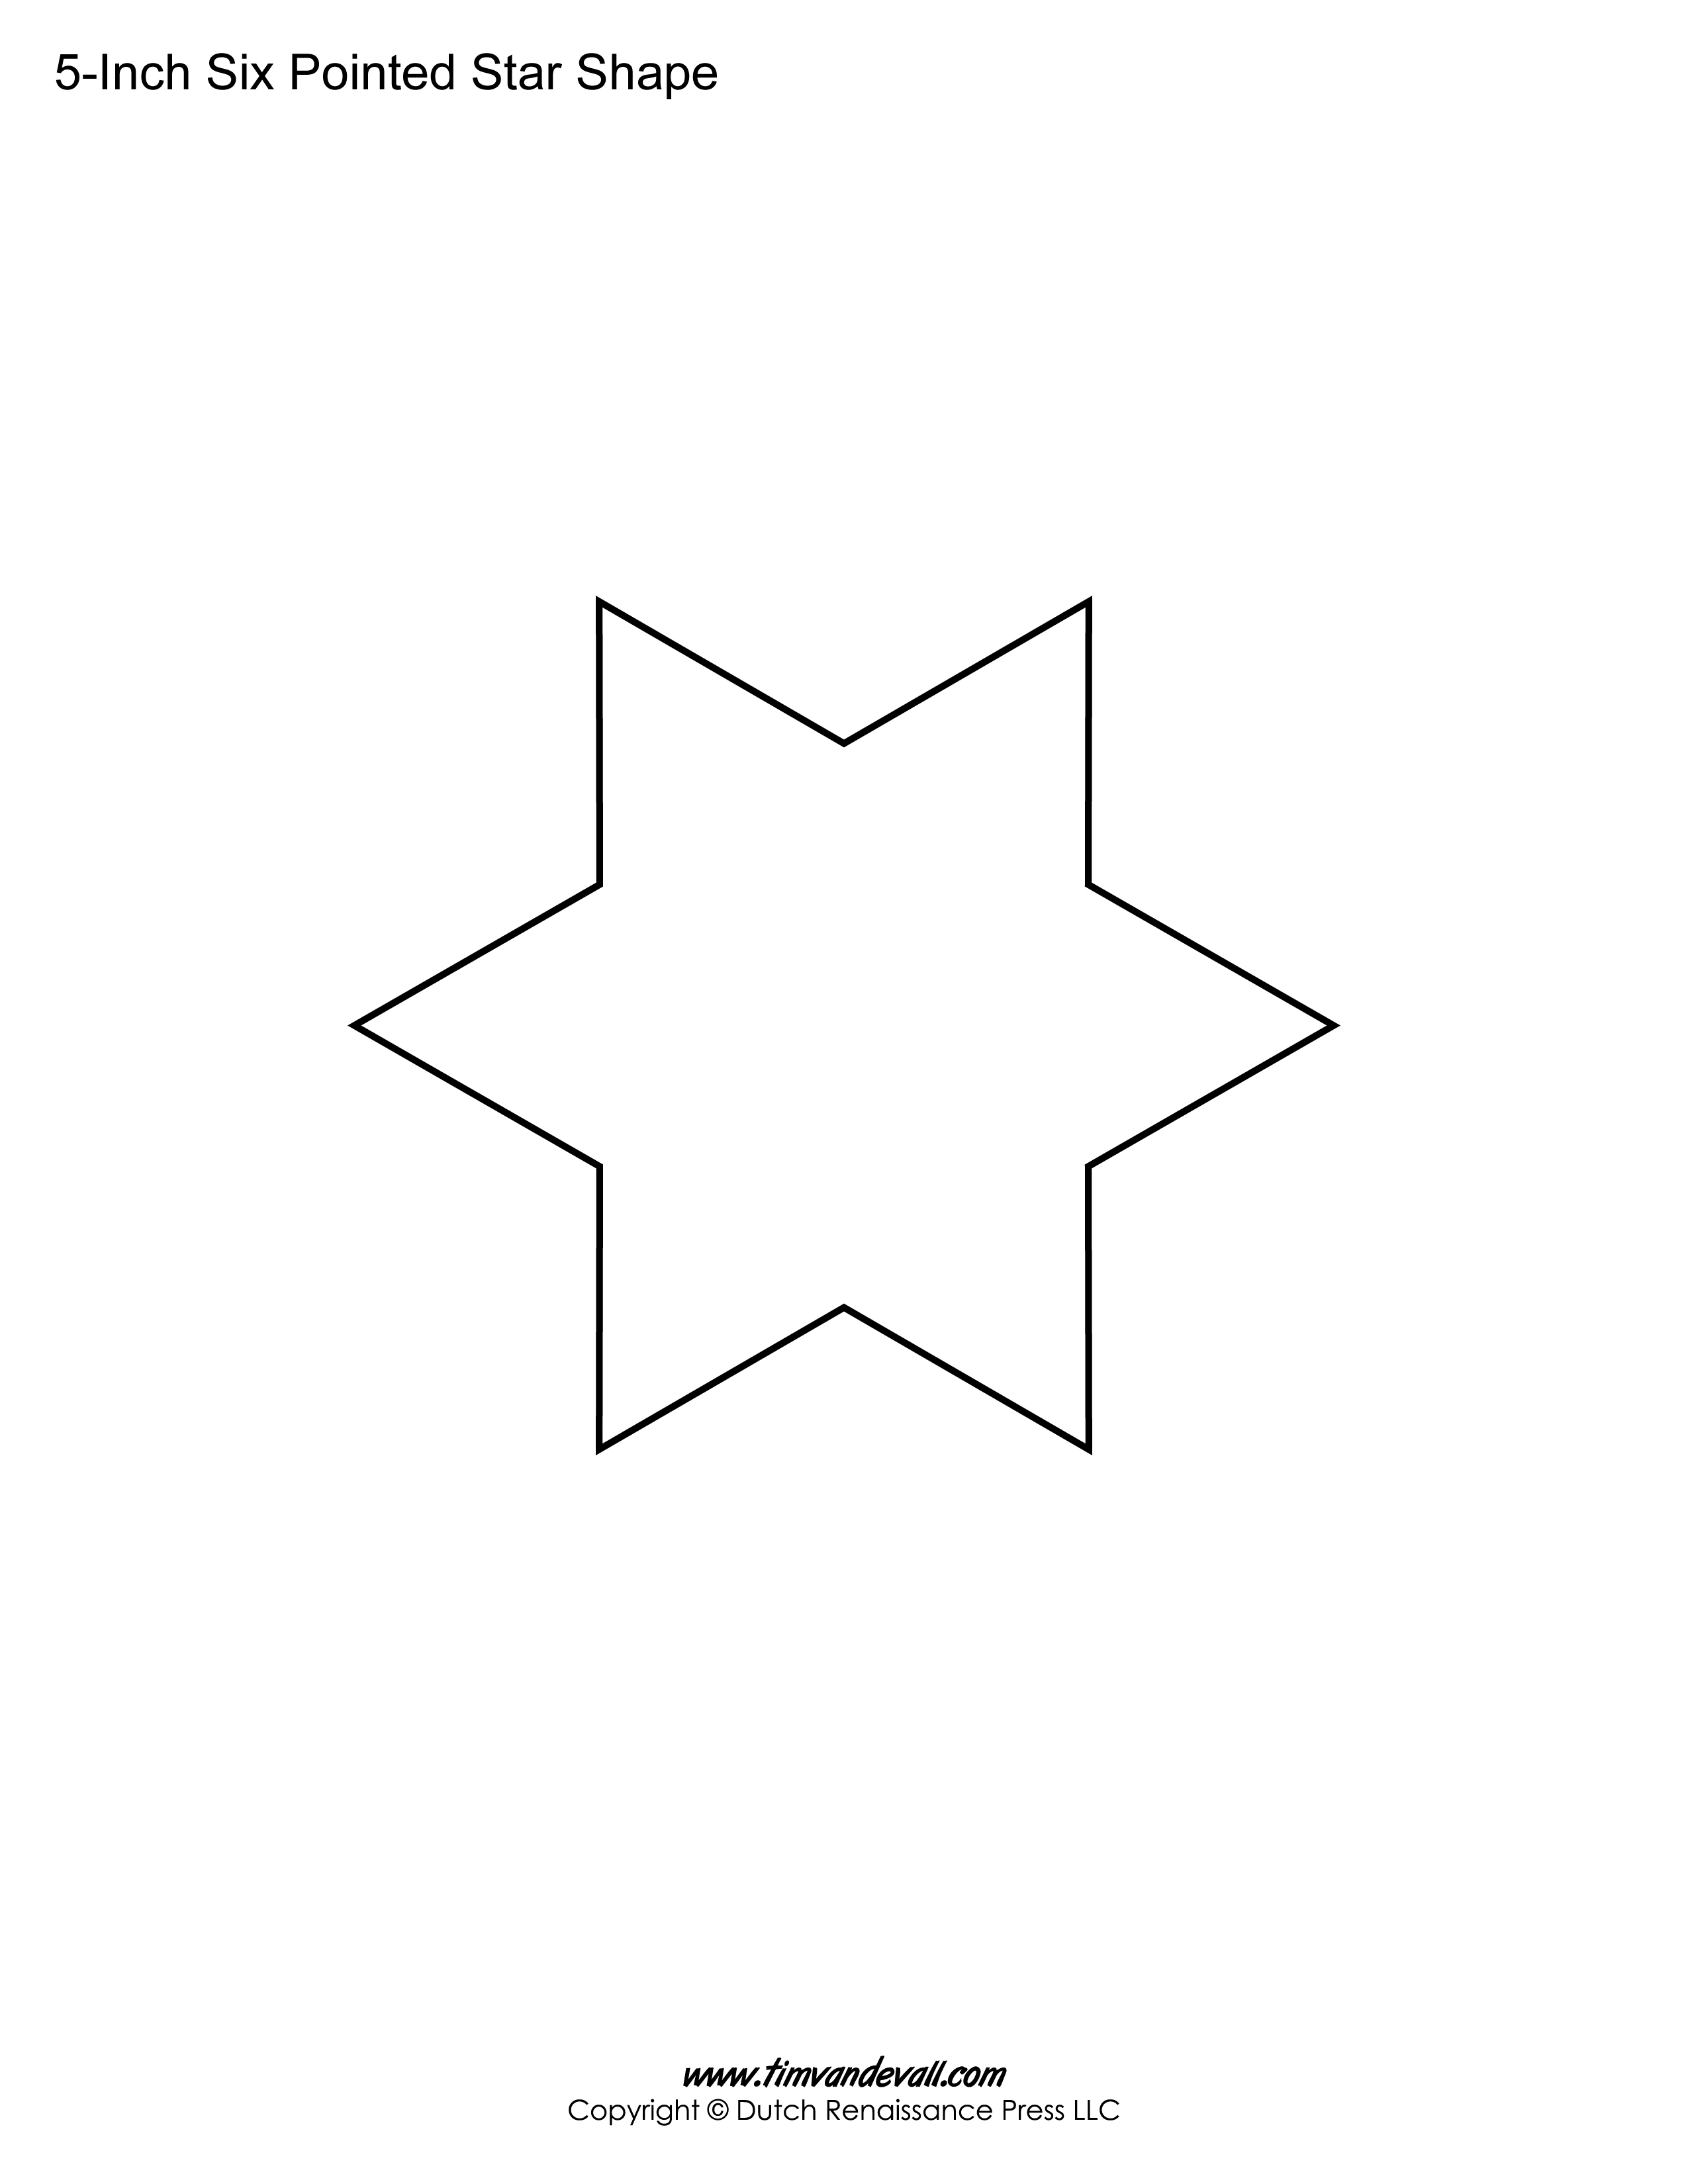 printable six pointed star templates blank shape pdf downloads